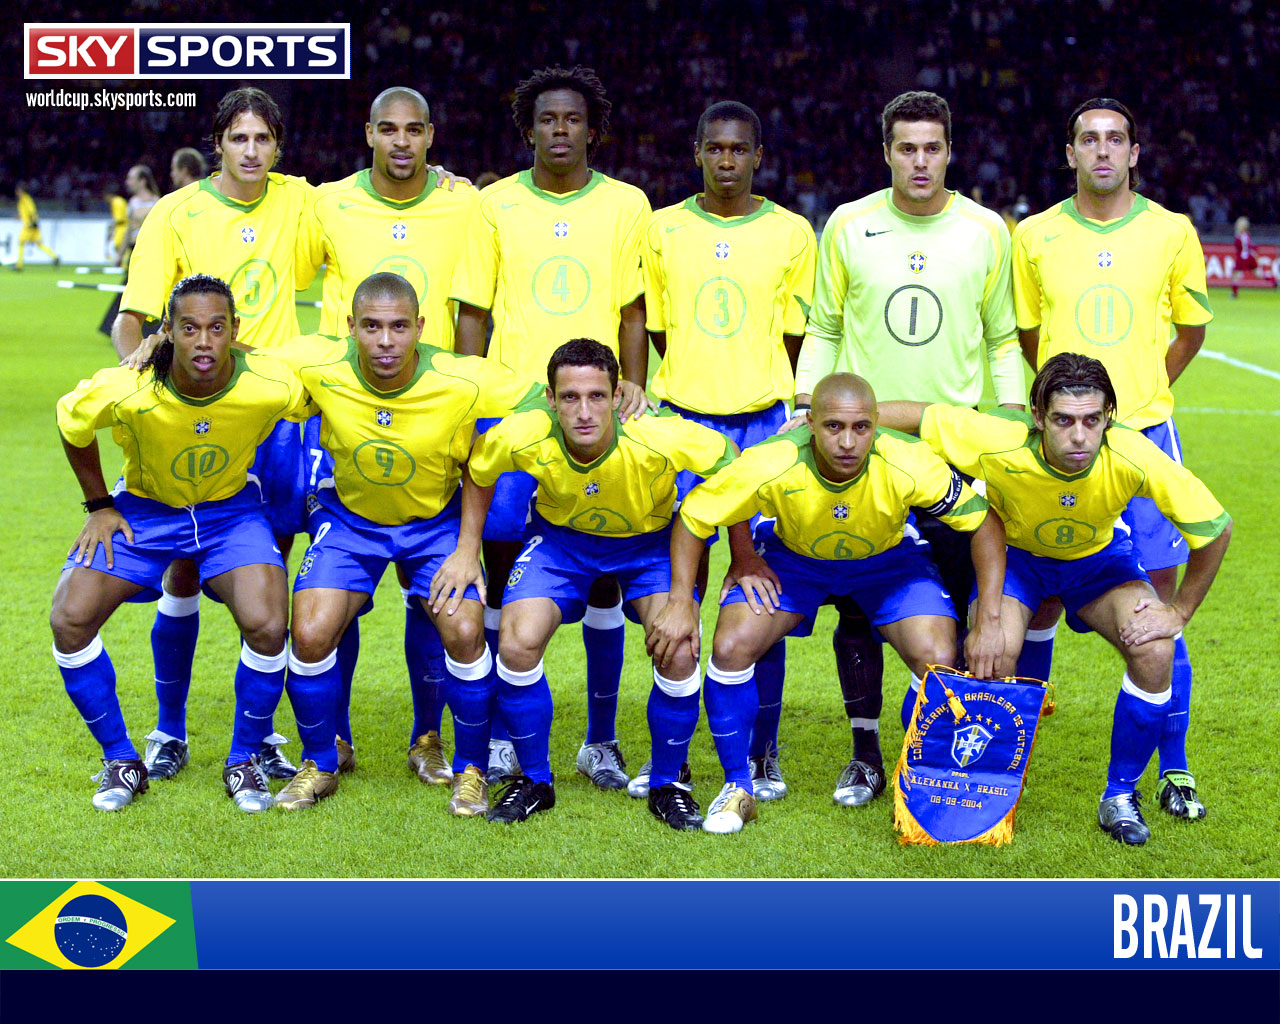 Soccer brazil national team